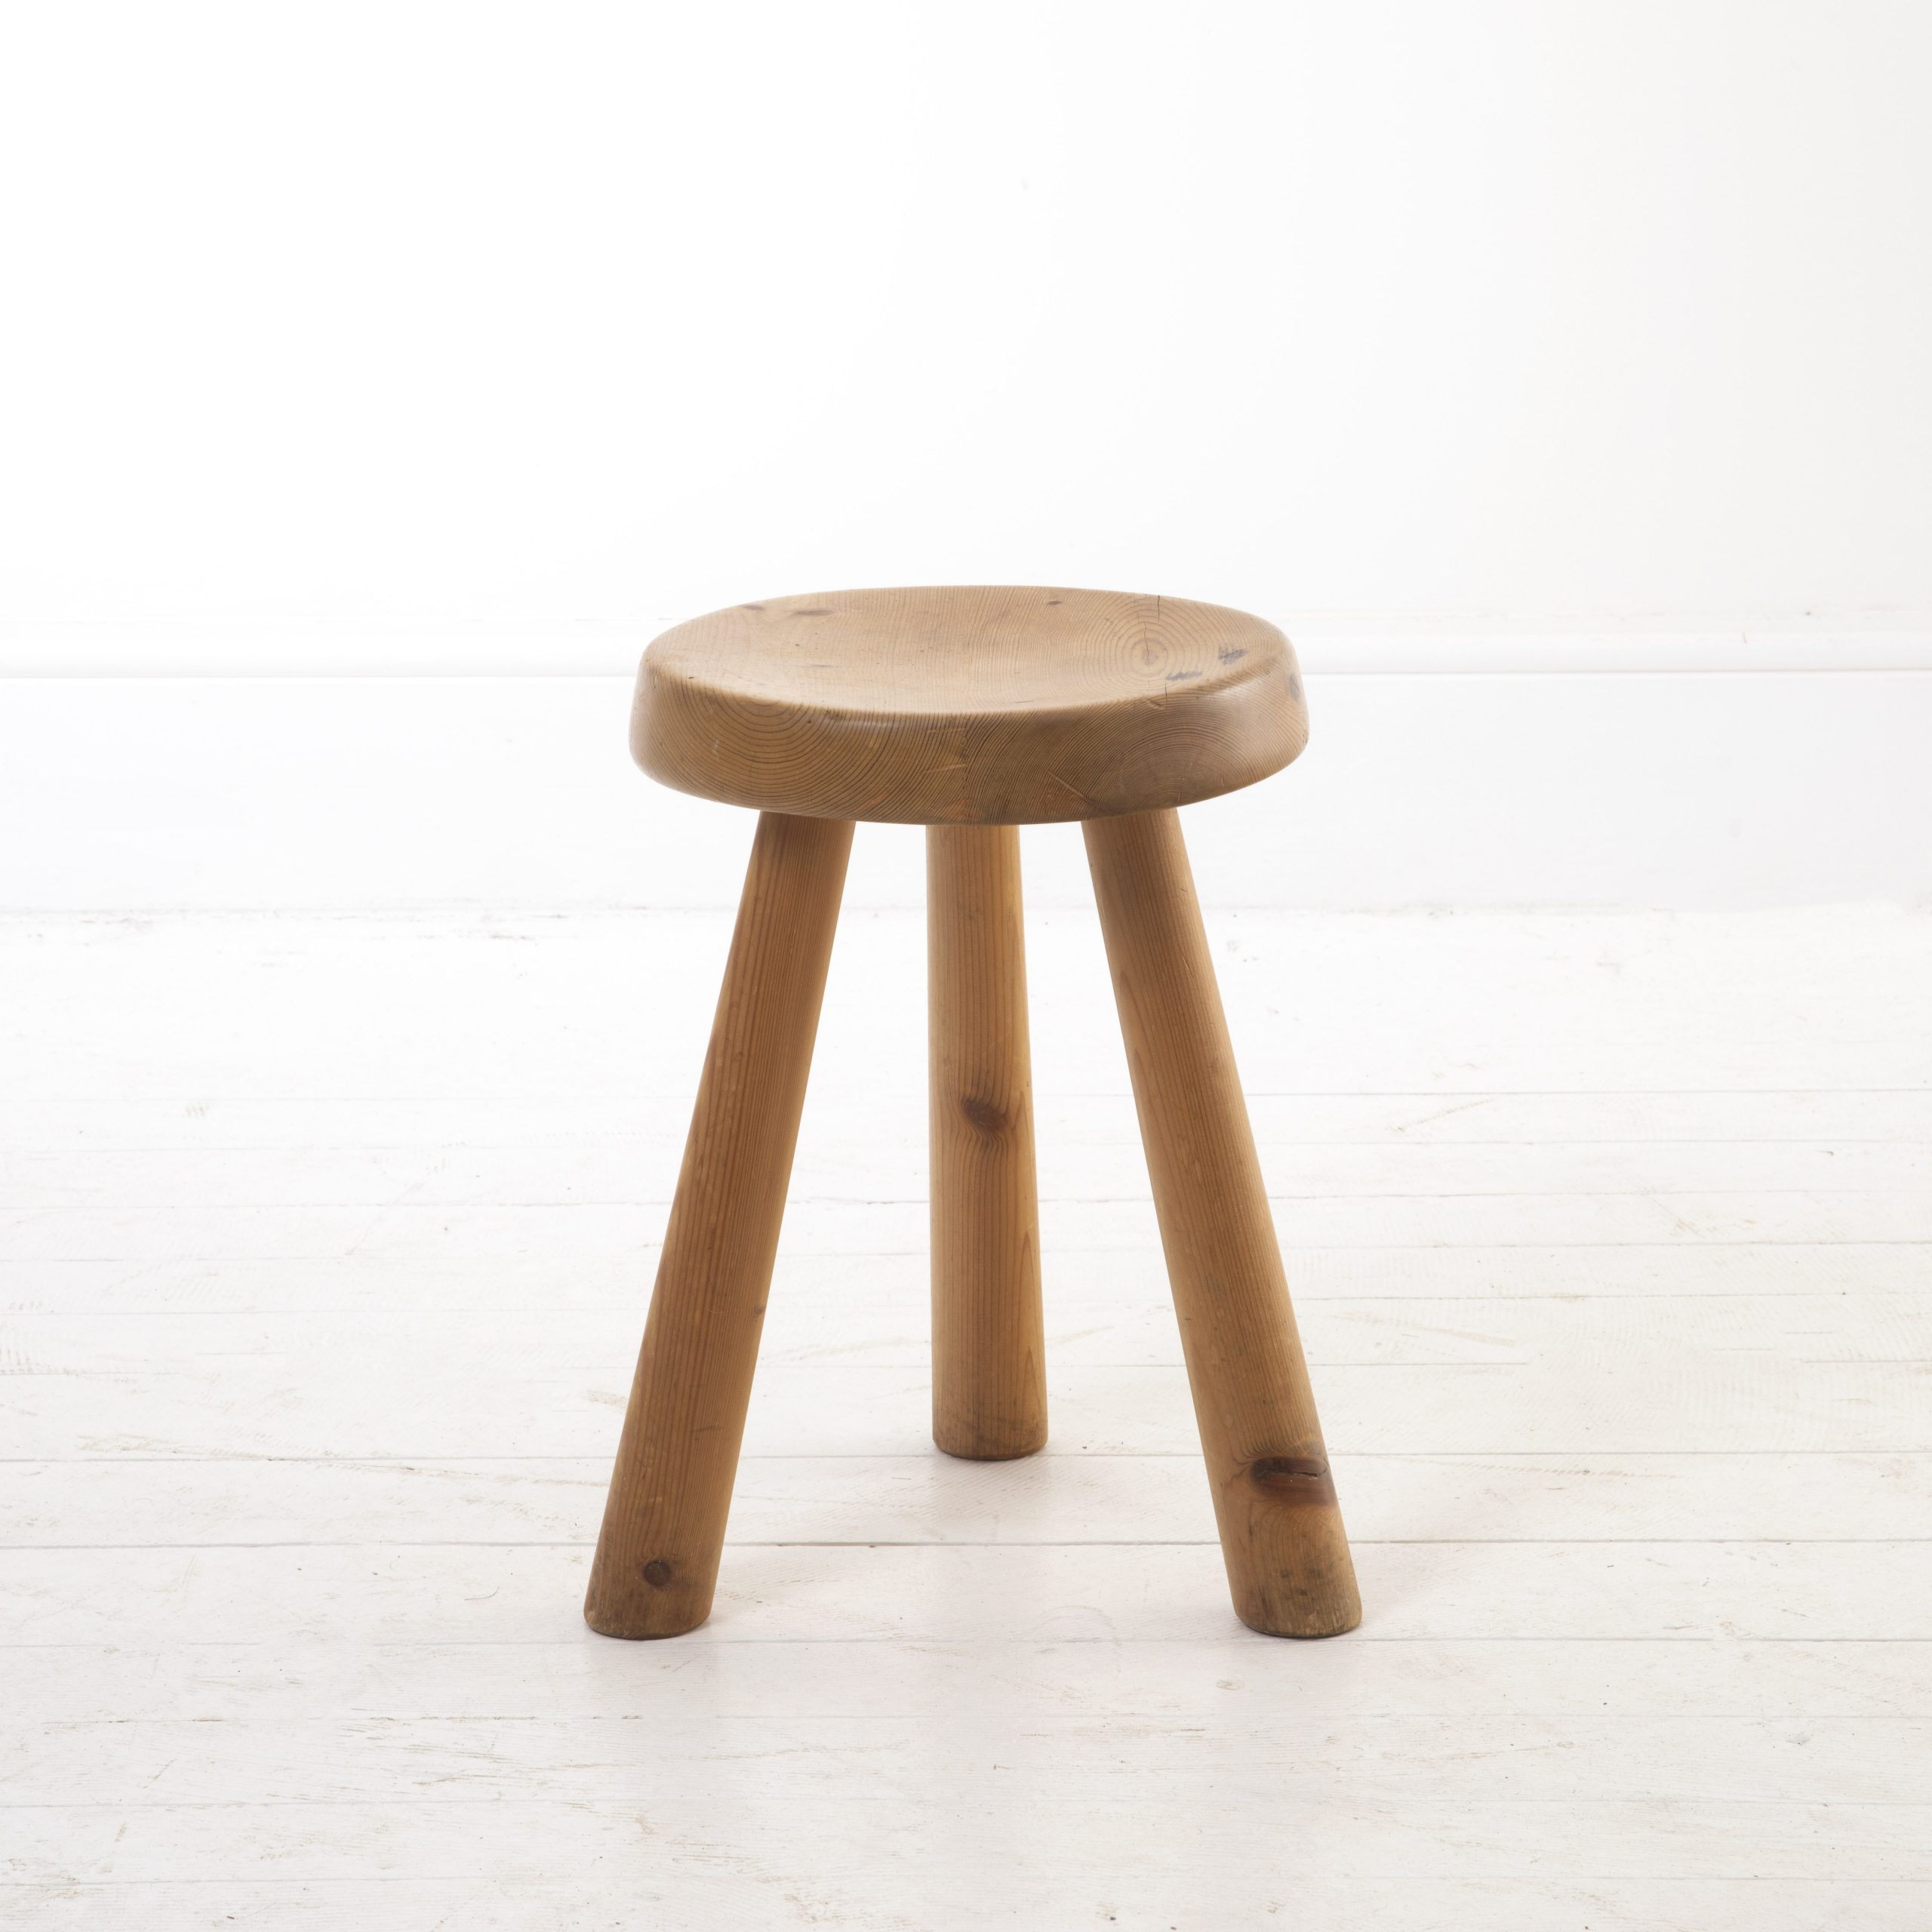 Charlotte Perriand Stool.